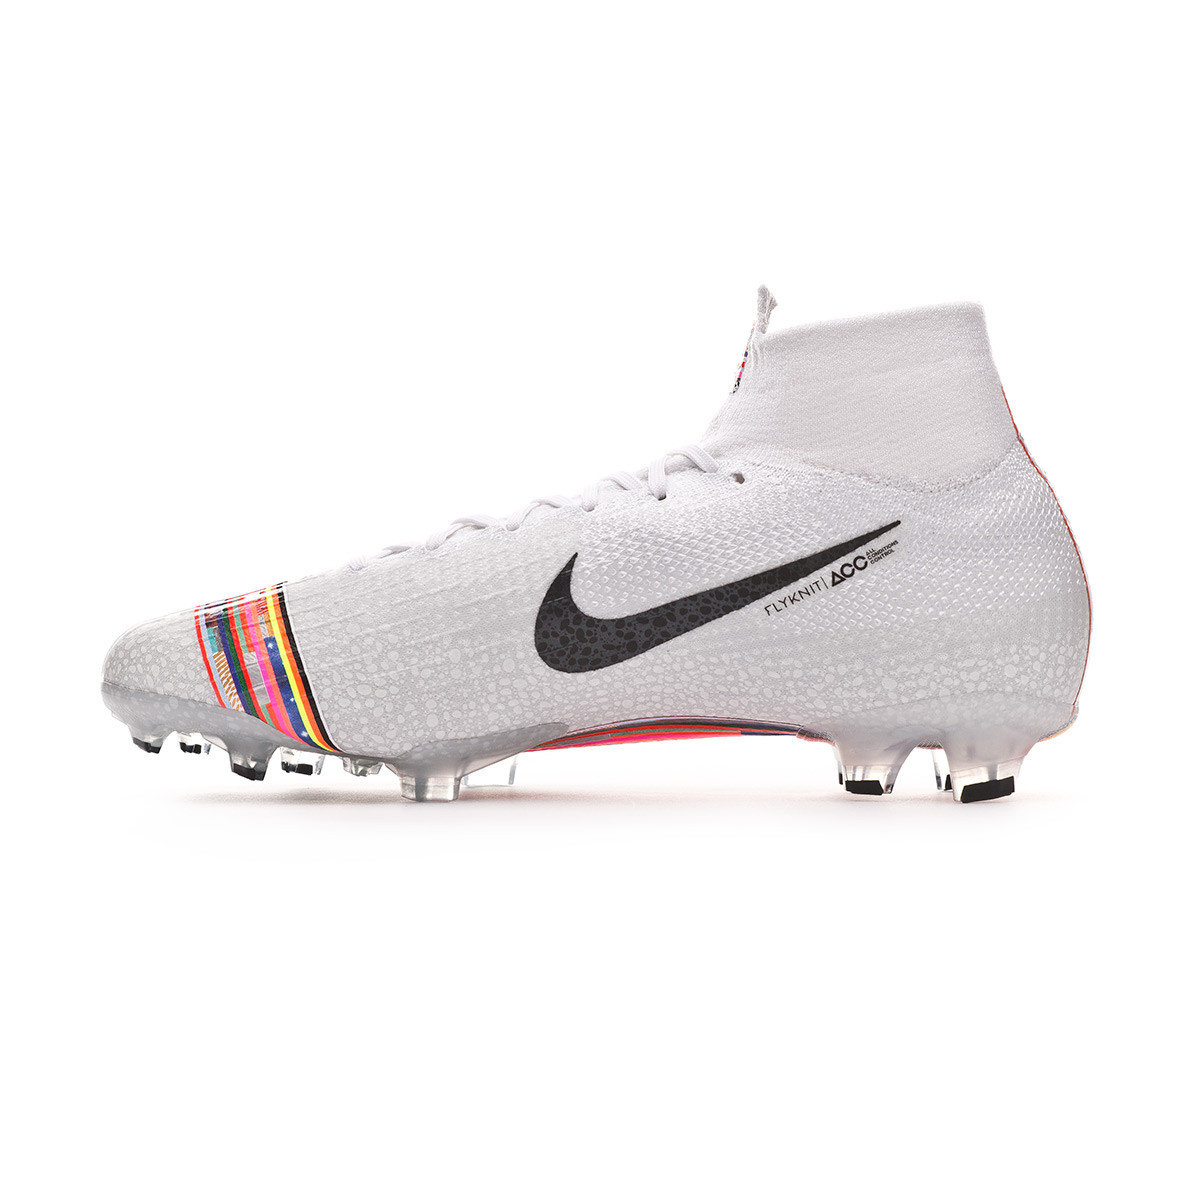 Chaussure de foot Nike Mercurial Superfly VI Elite LVL UP FG